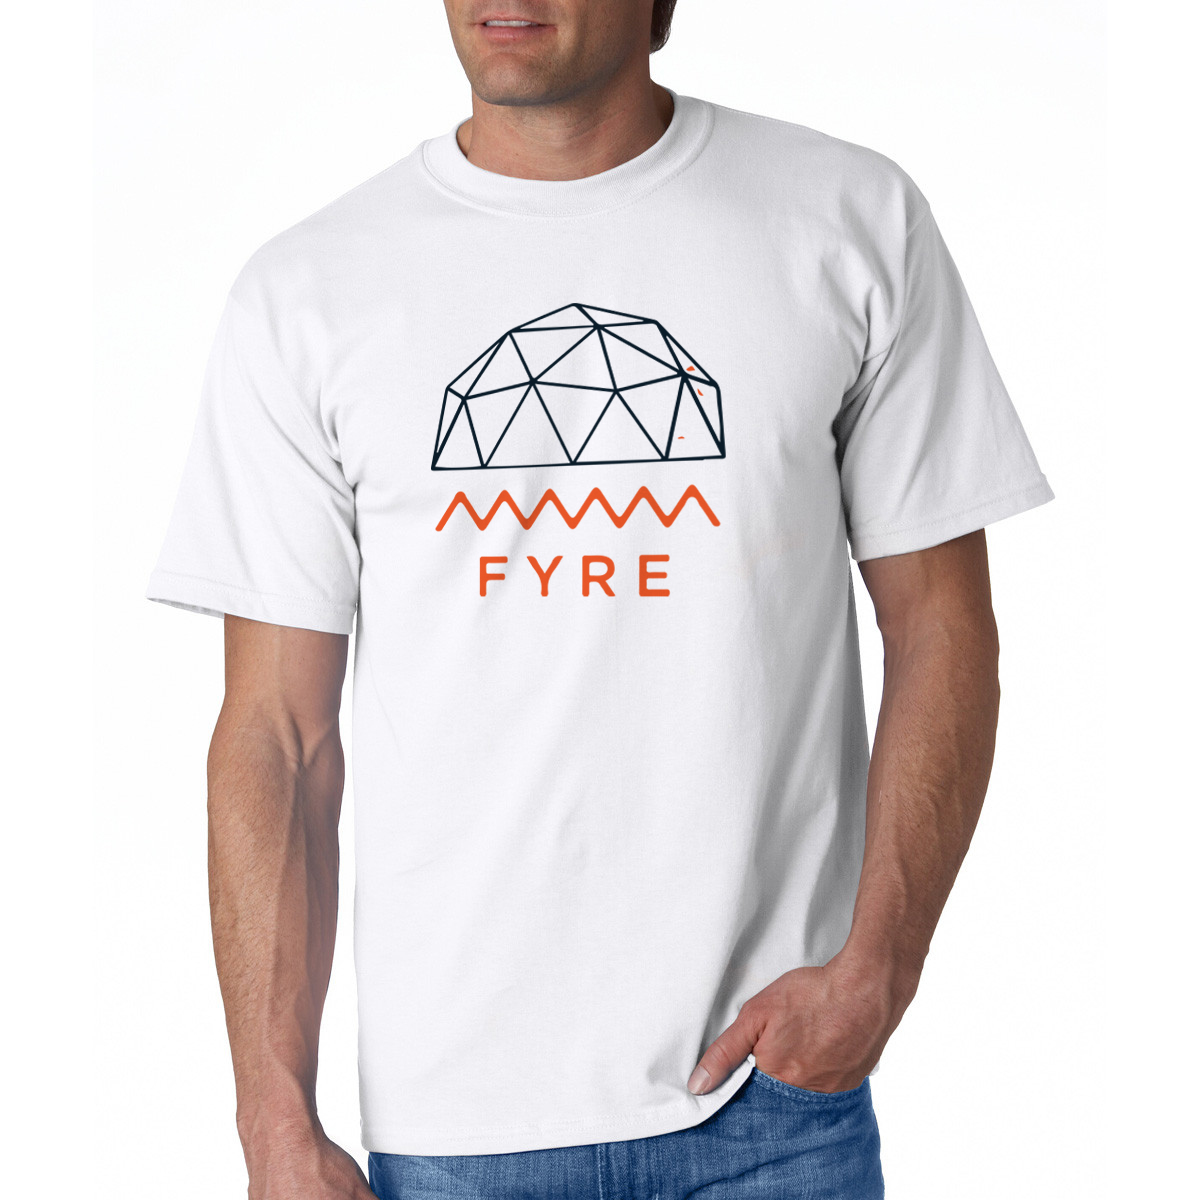 #FYRE FEST COMMEMORATIVE TEE SHIRT